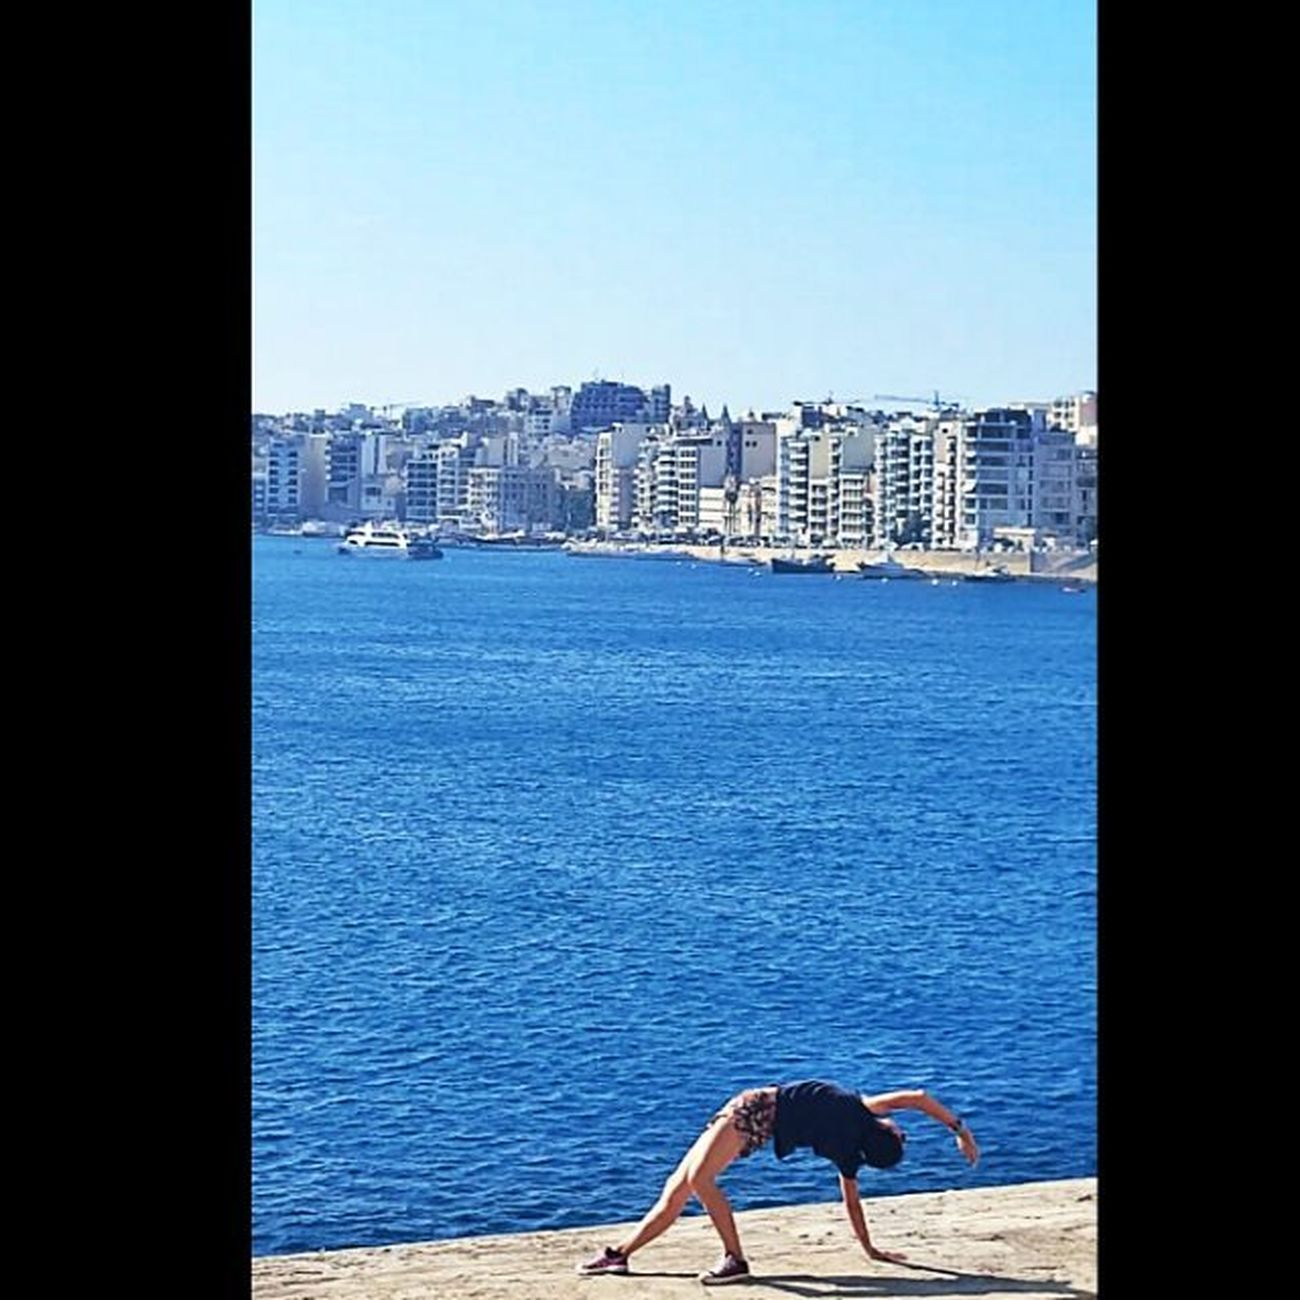 Open your heart. And walk where your heart leads you 🐳 Dailyogabydicle Tgif Bend Yoga View Malta Travel Holiday Yogagirl Yogateacher Aycyambassador Worldtraveler Askileyap Yogaeverywhere Yogaeverydamnday Sea Nature Bestoftheday Yogadaily Instadaily Fitlife Friday Askileyap